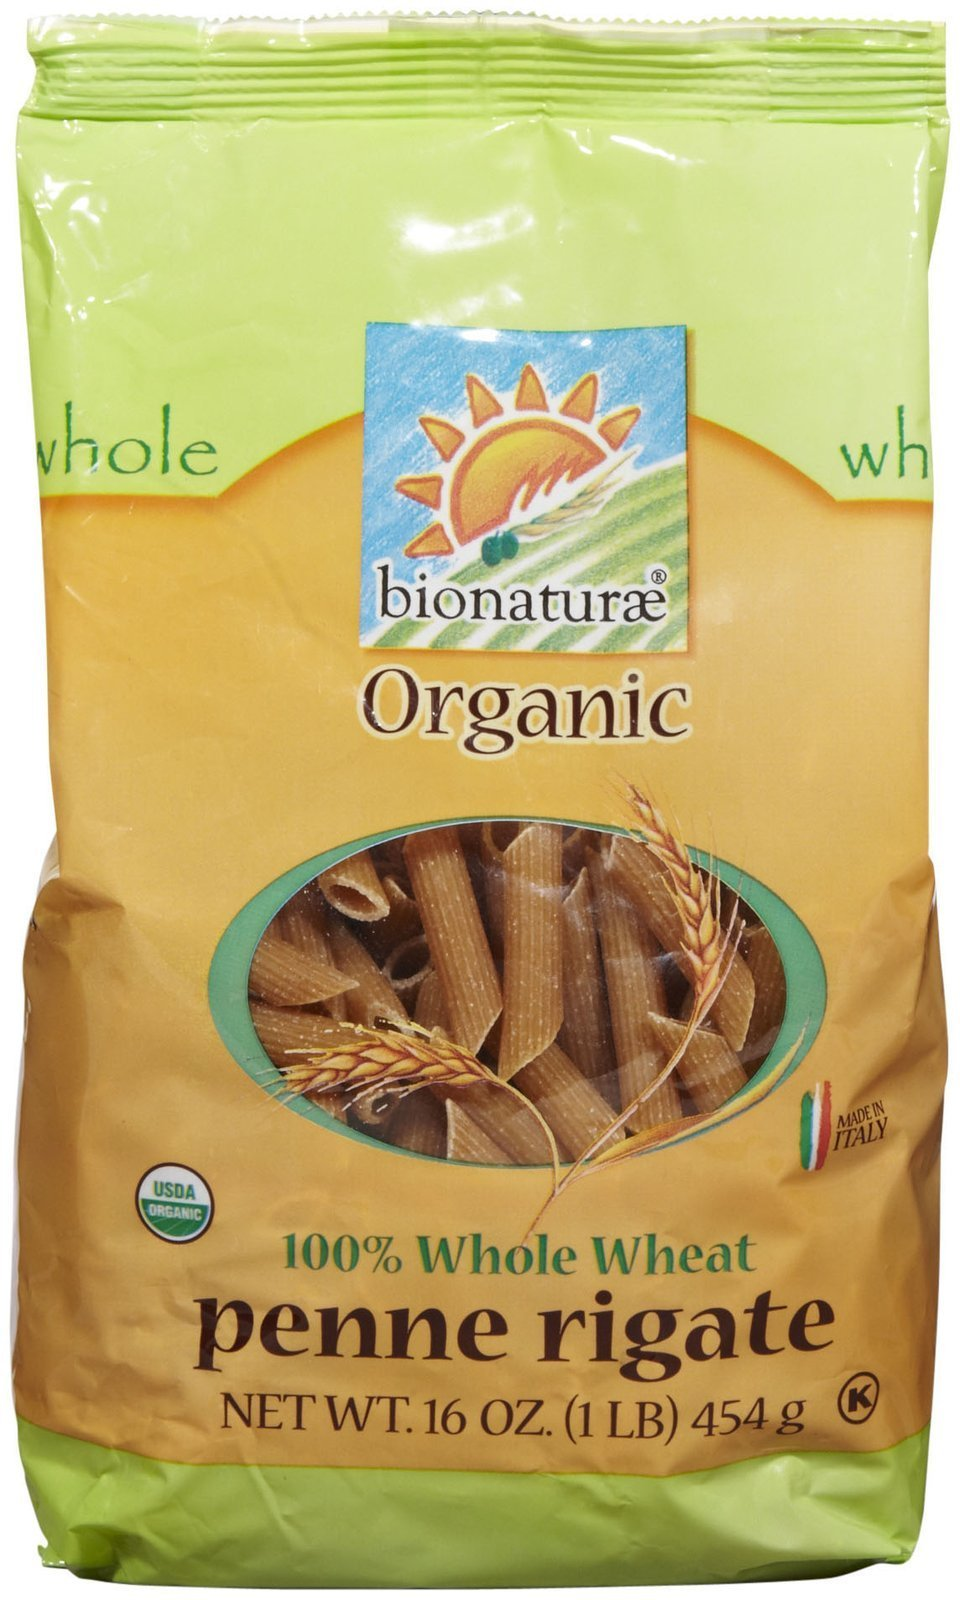 Bionaturae Organic Pasta, Whole Wheat Penne Rigate-16 oz